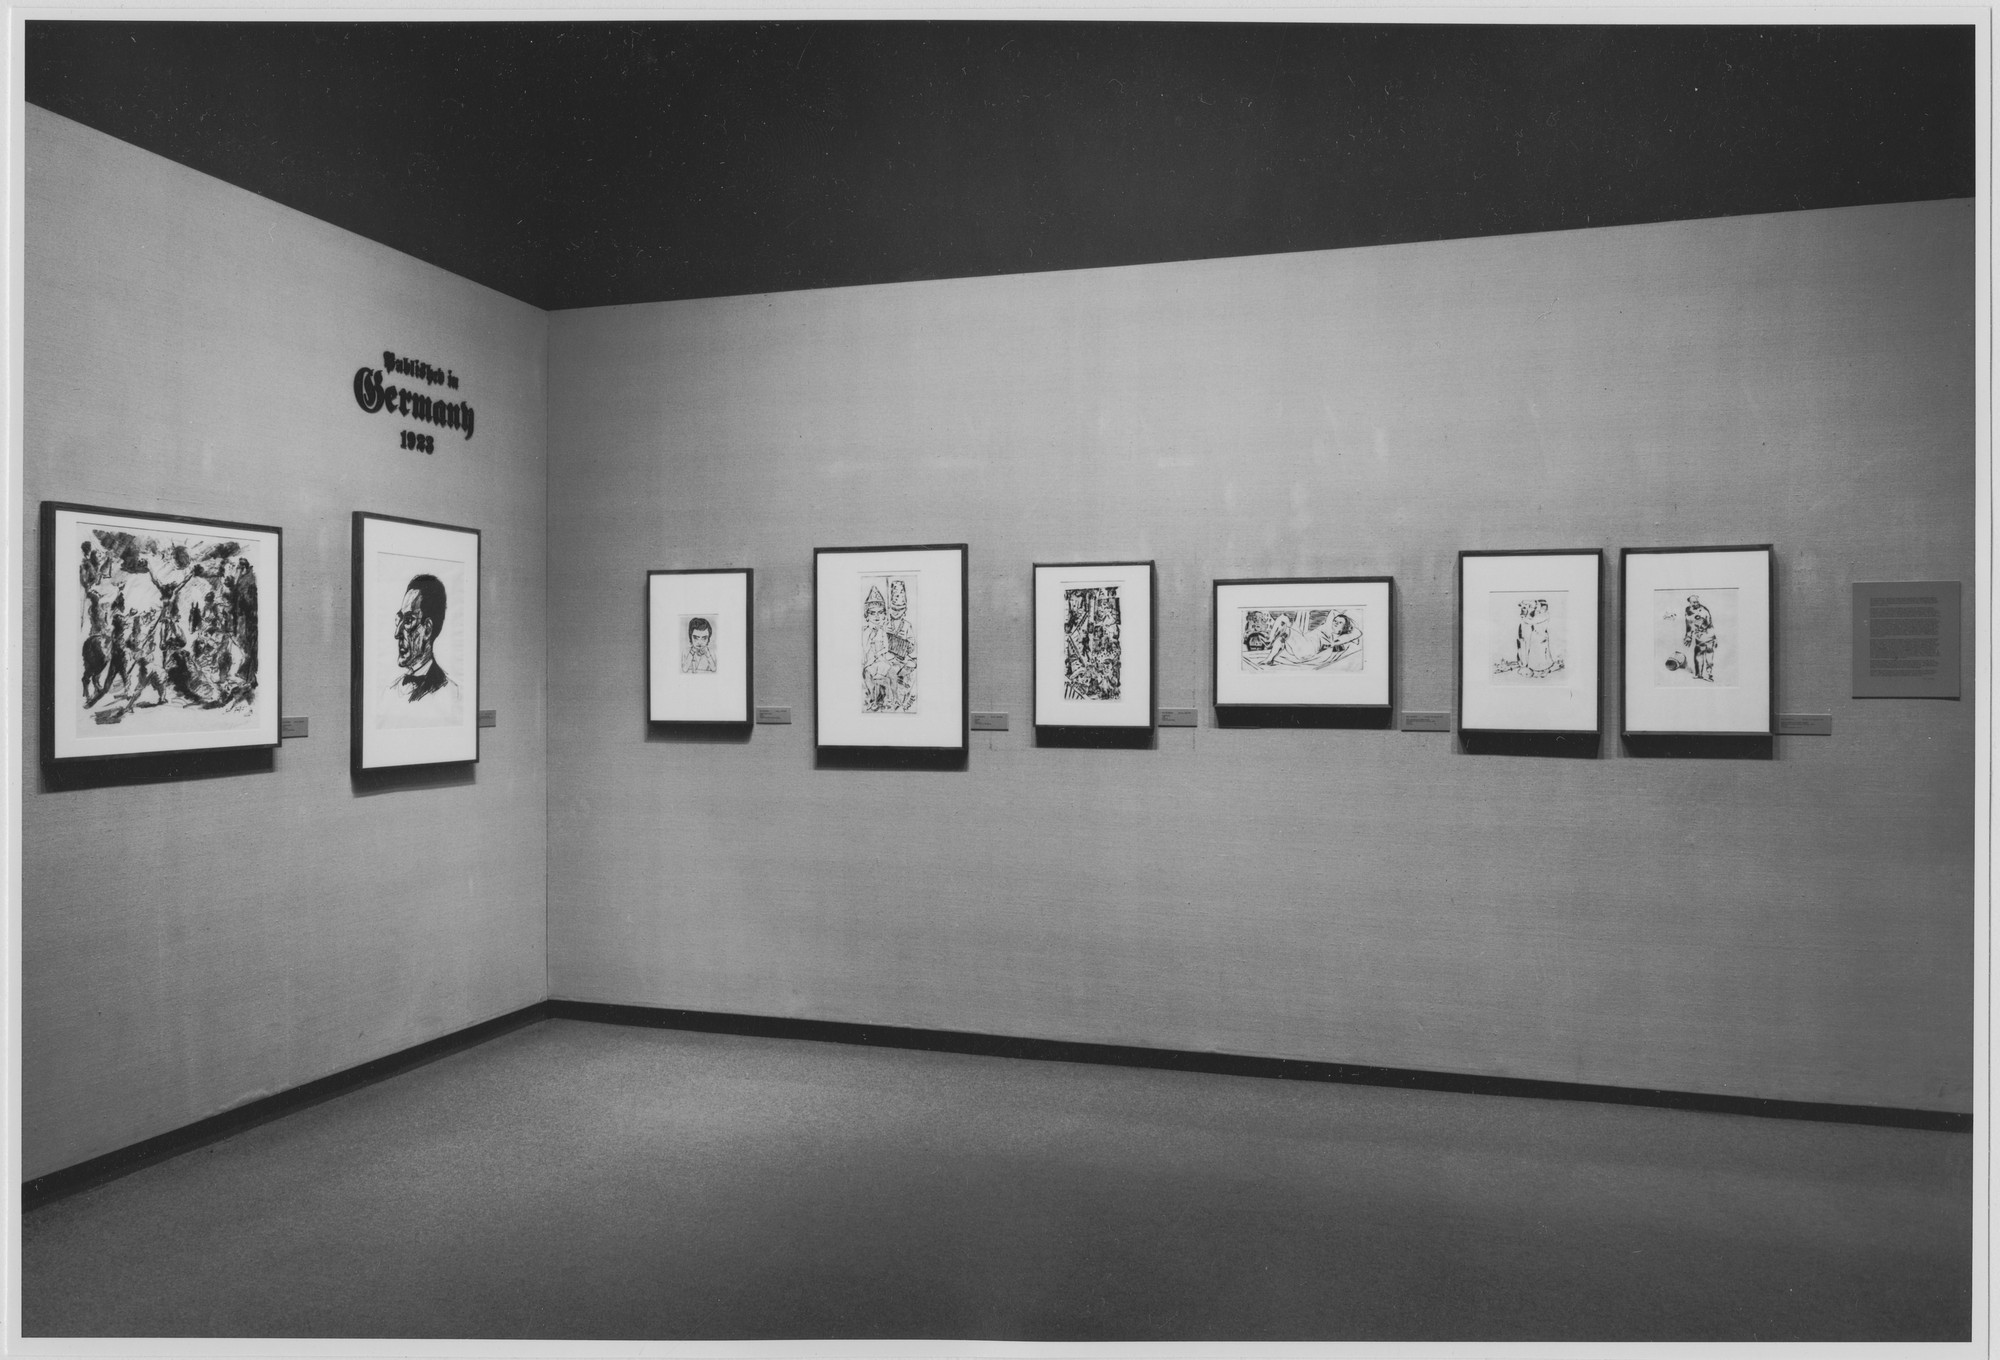 "Installation view of the exhibition, ""Published in Germany, 1923."" October 12, 1973–February 2, 1974. Photographic Archive. The Museum of Modern Art Archives, New York. IN1045.1. Photograph by Katherine Keller."